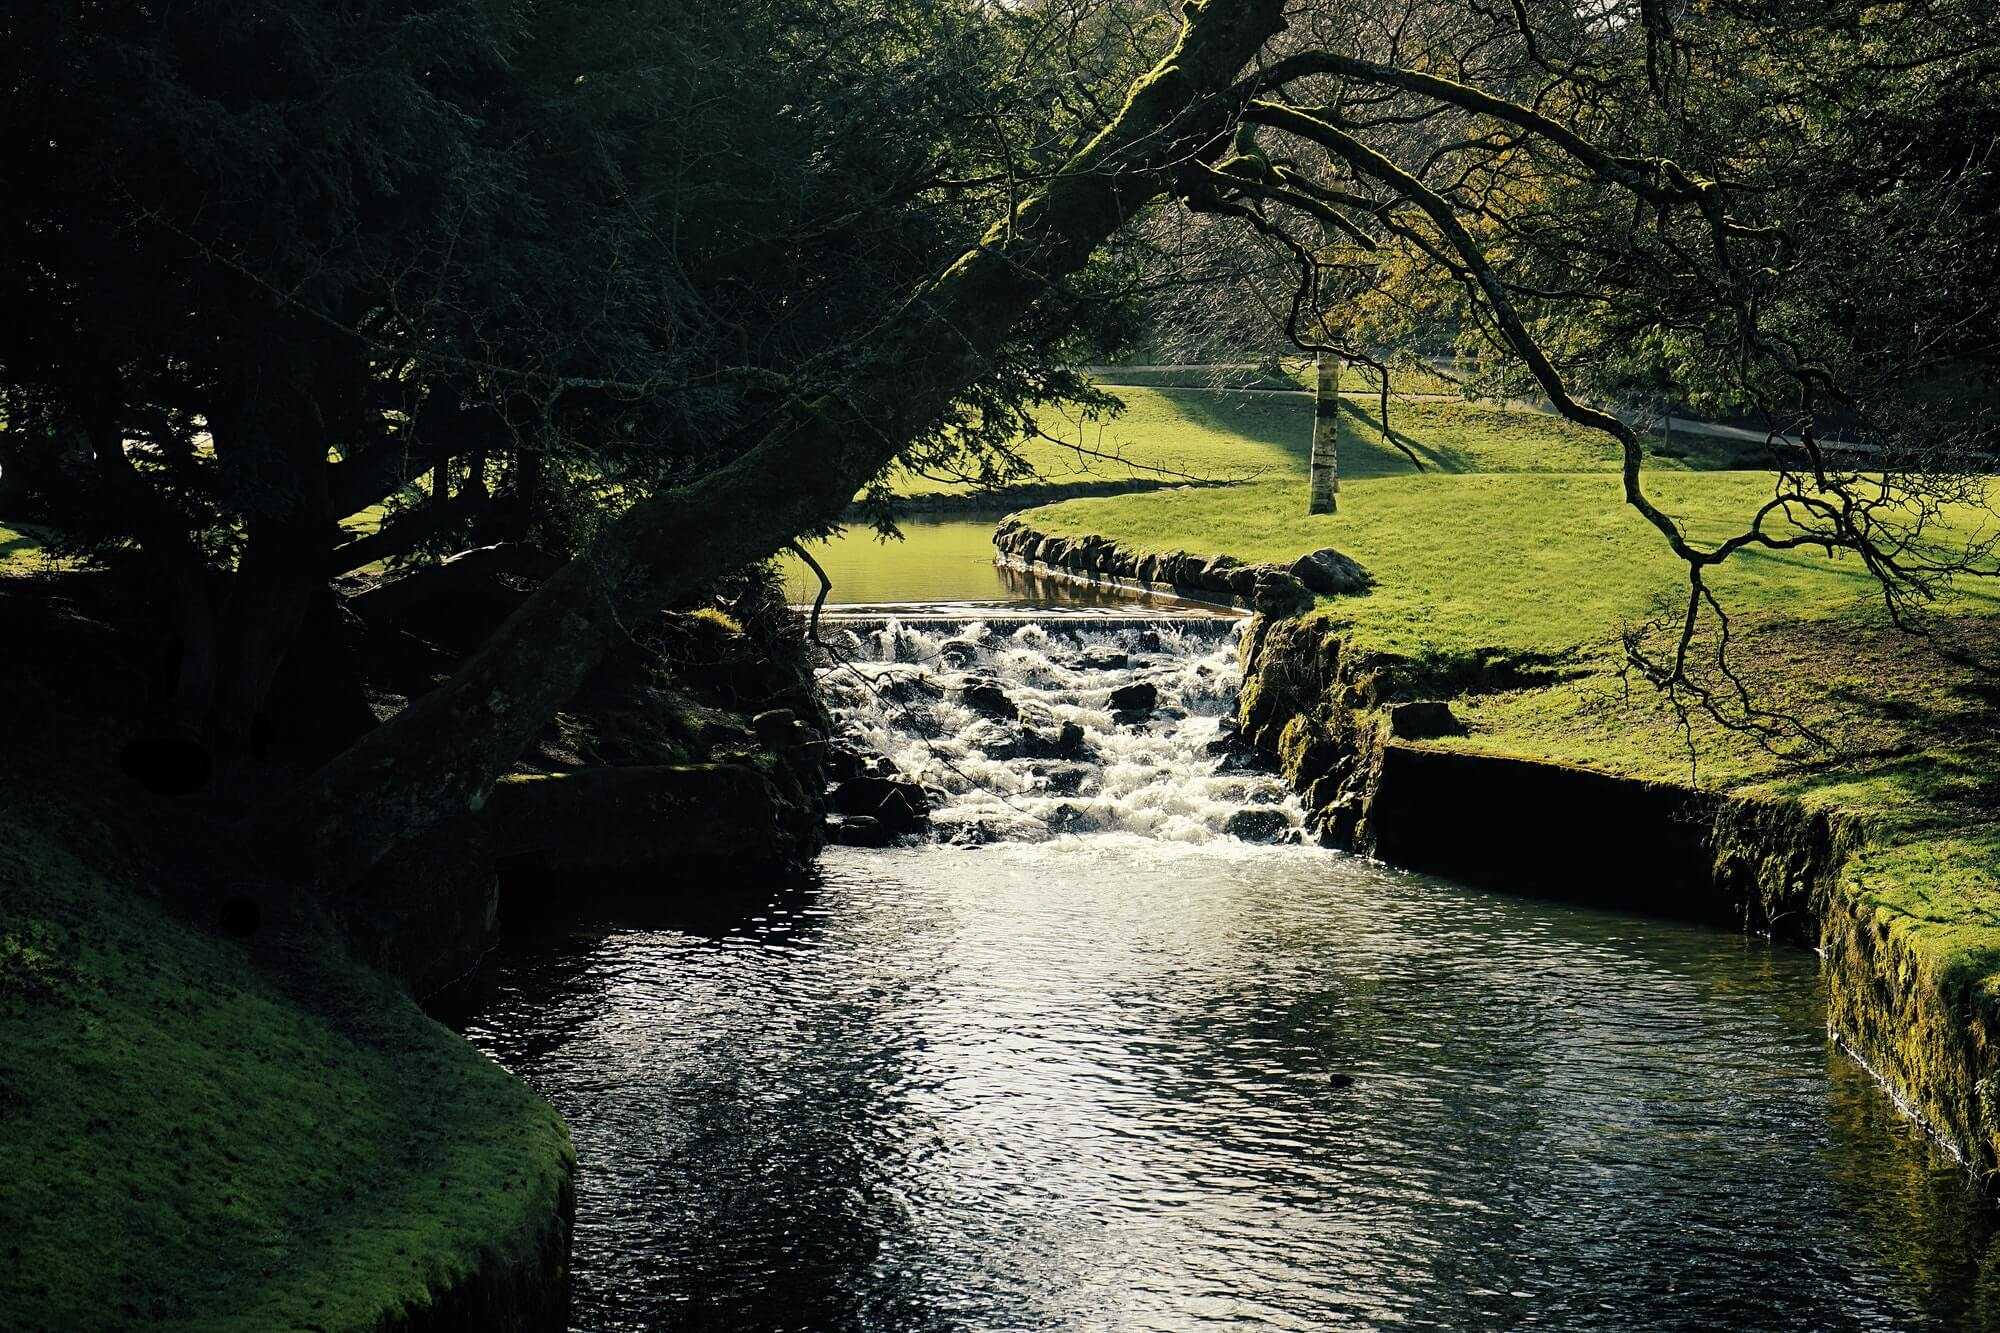 Buxton river in the daytime